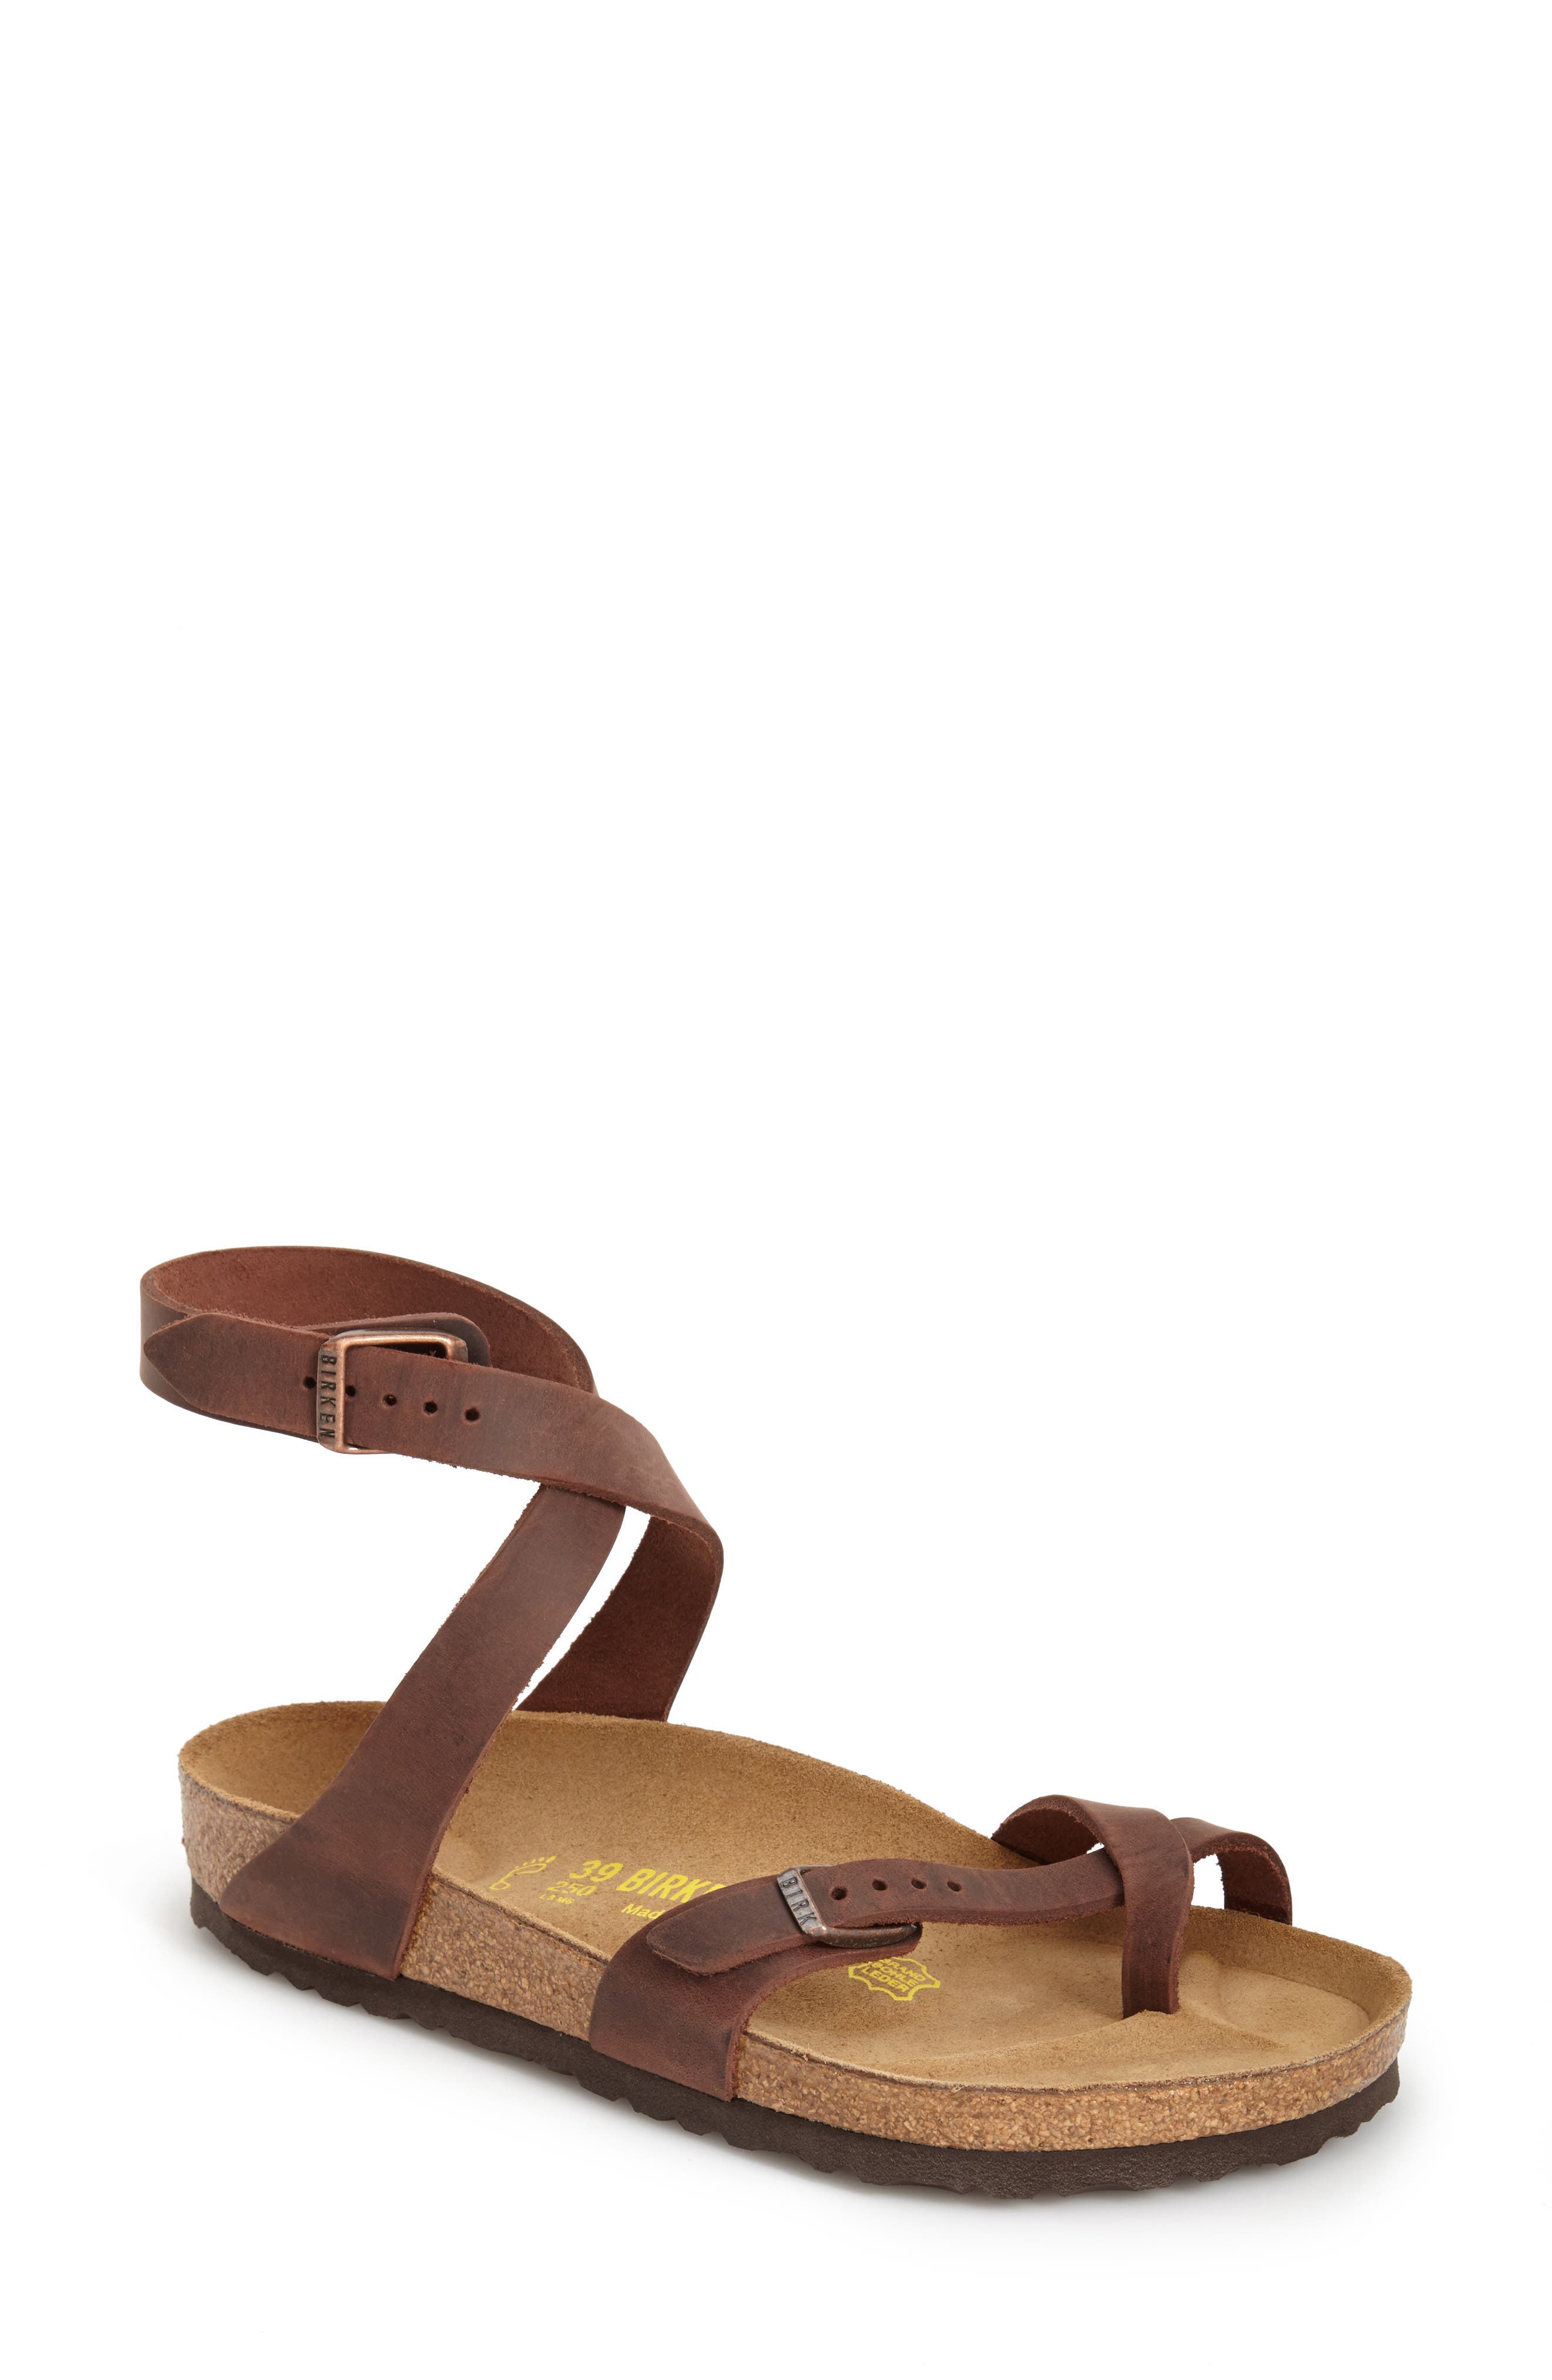 'Yara' Sandal,                             Alternate thumbnail 4, color,                             YARA HABANA OILED LEATHER